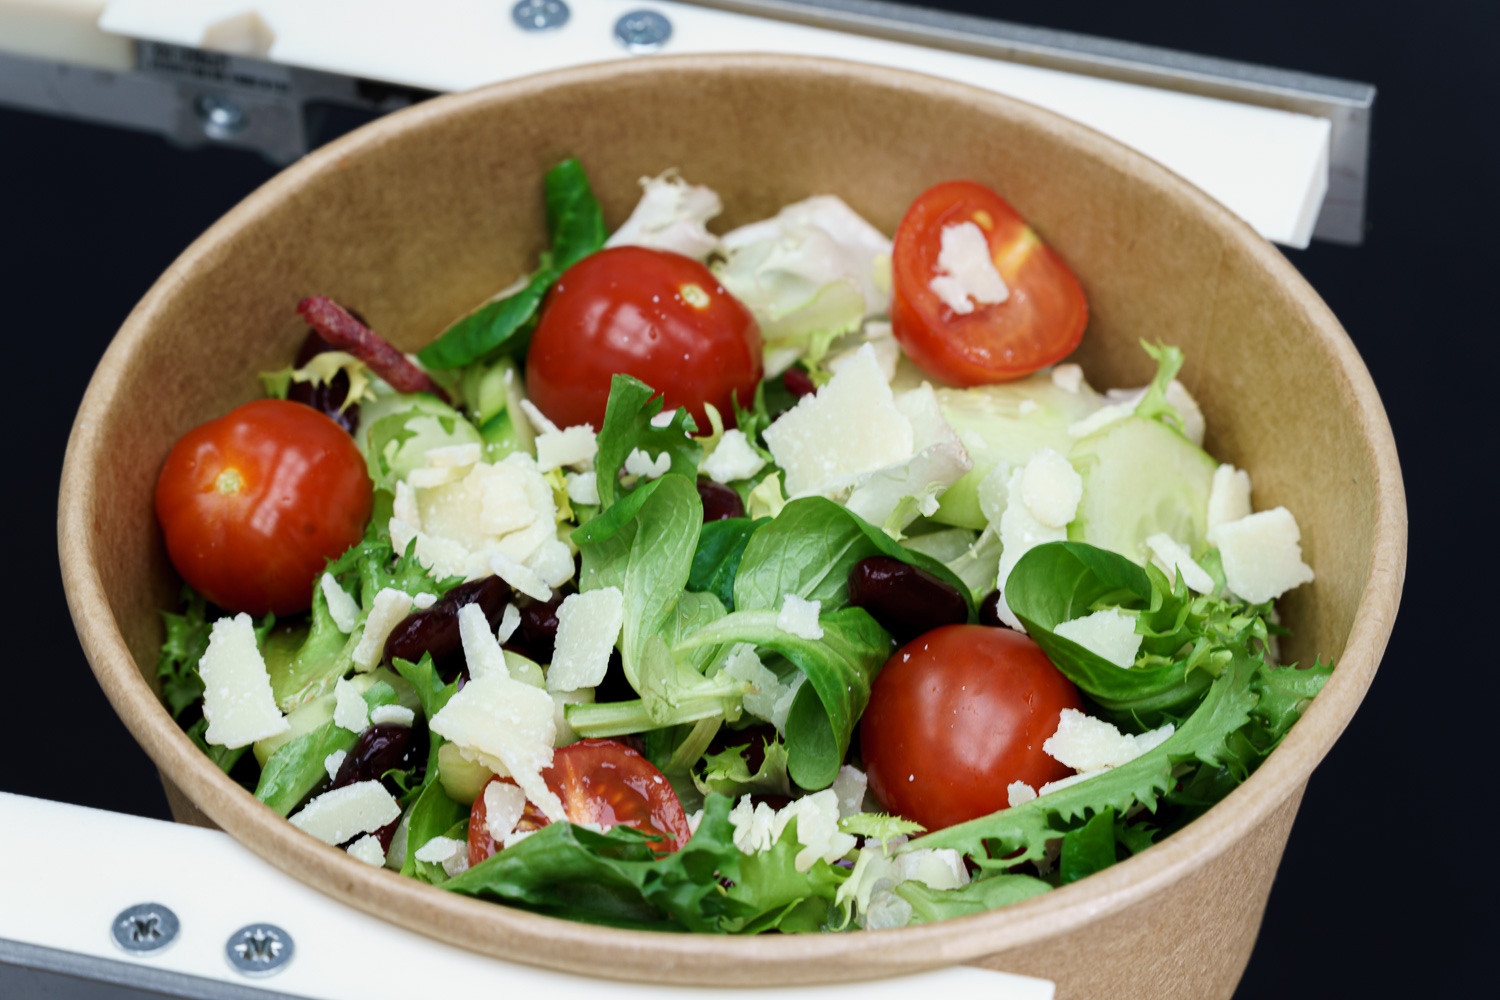 Green salad with cherry tomatoes and parmesan